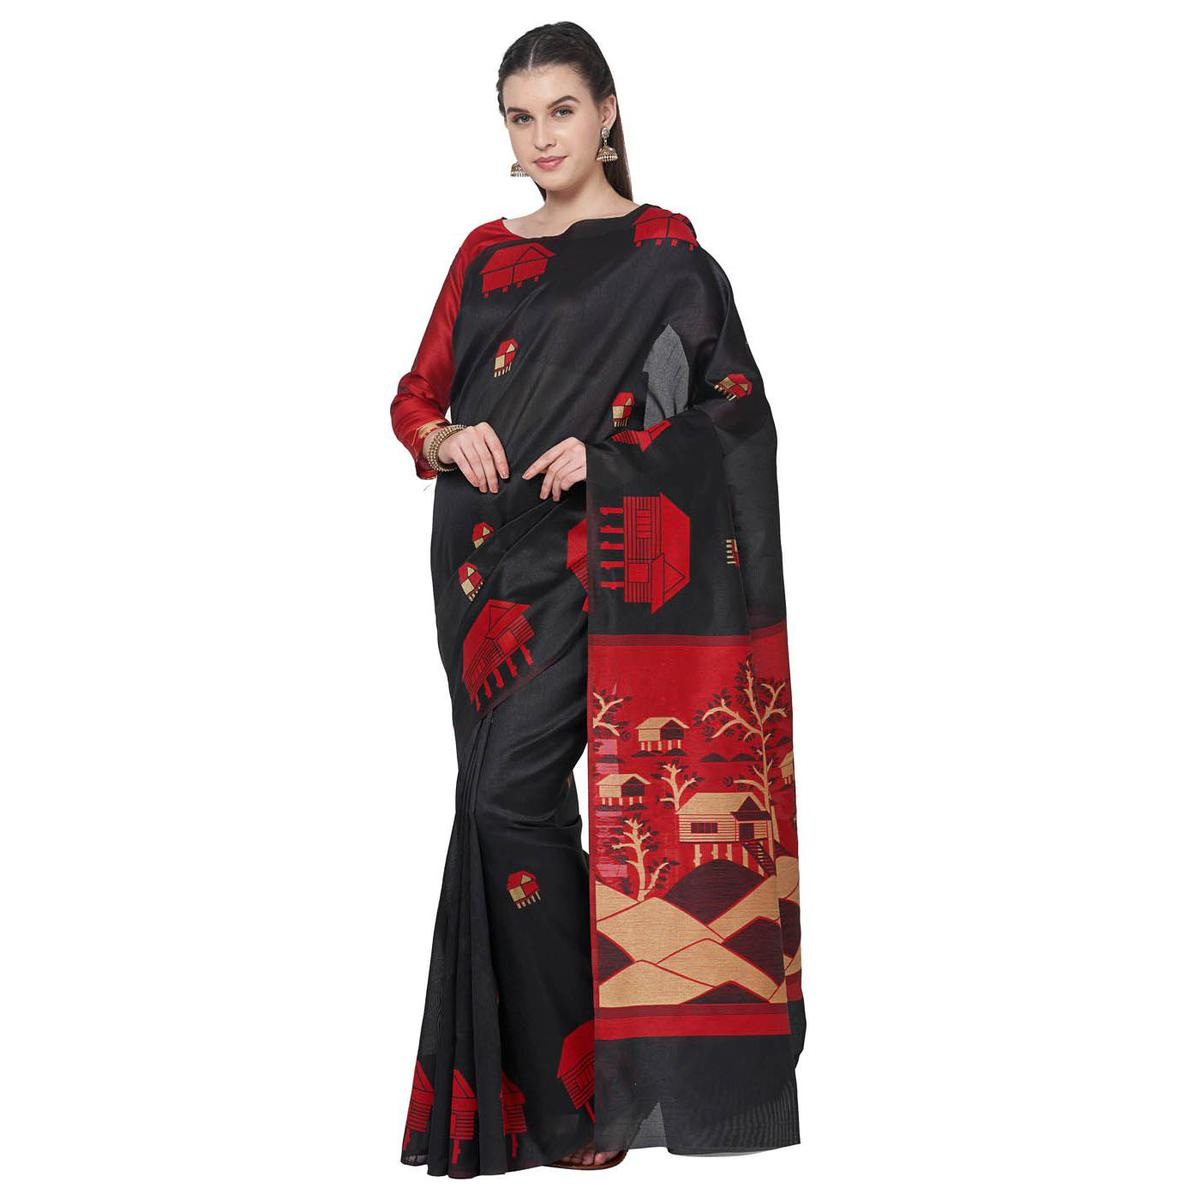 Opulent Black Colored Festive Wear Art Silk Saree With Matching Blouse.